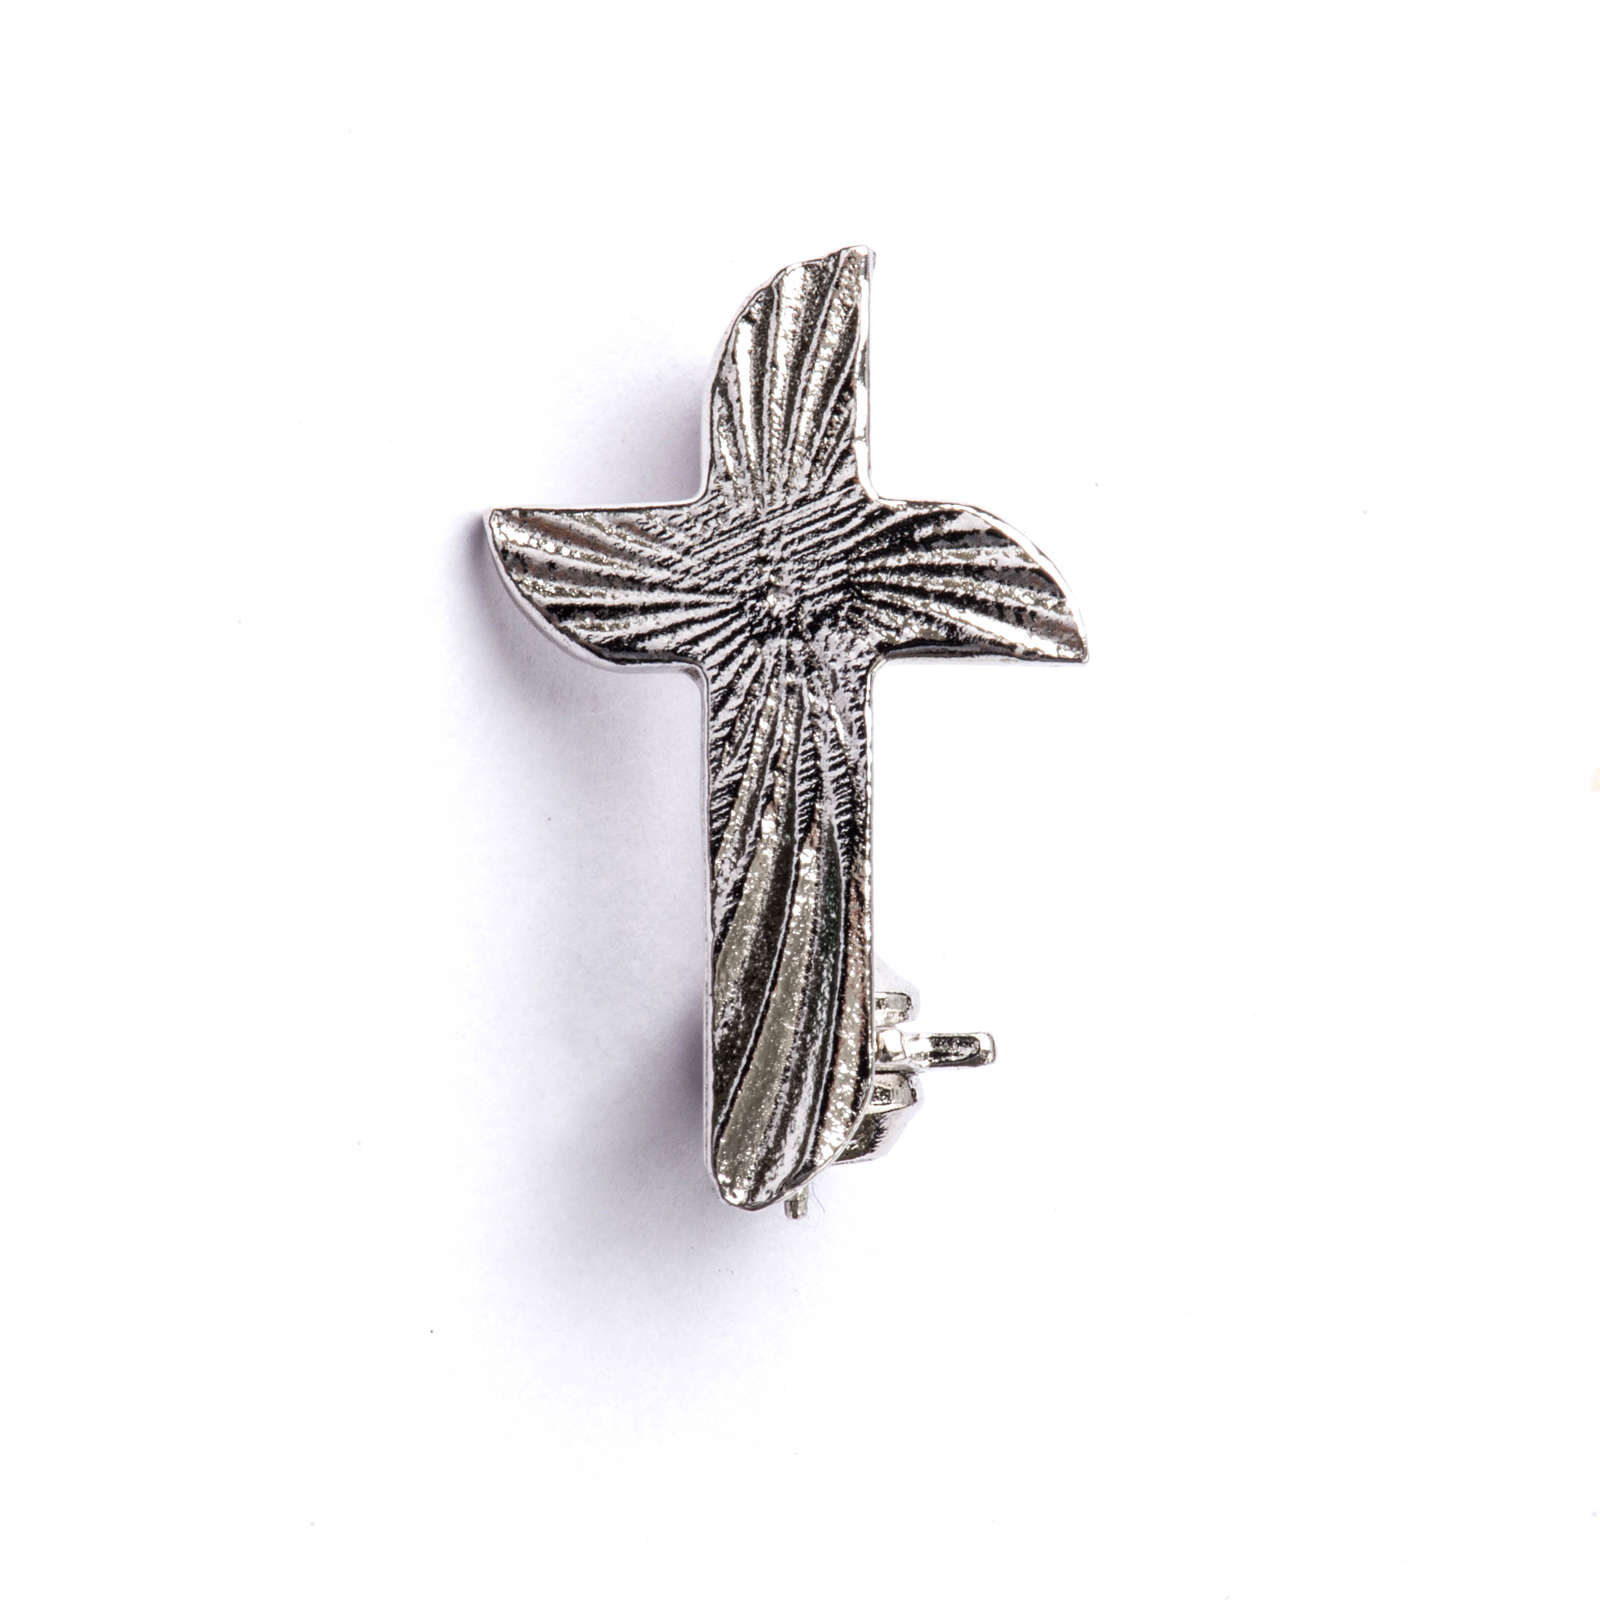 Knurled clergyman cross in 925 silver 4